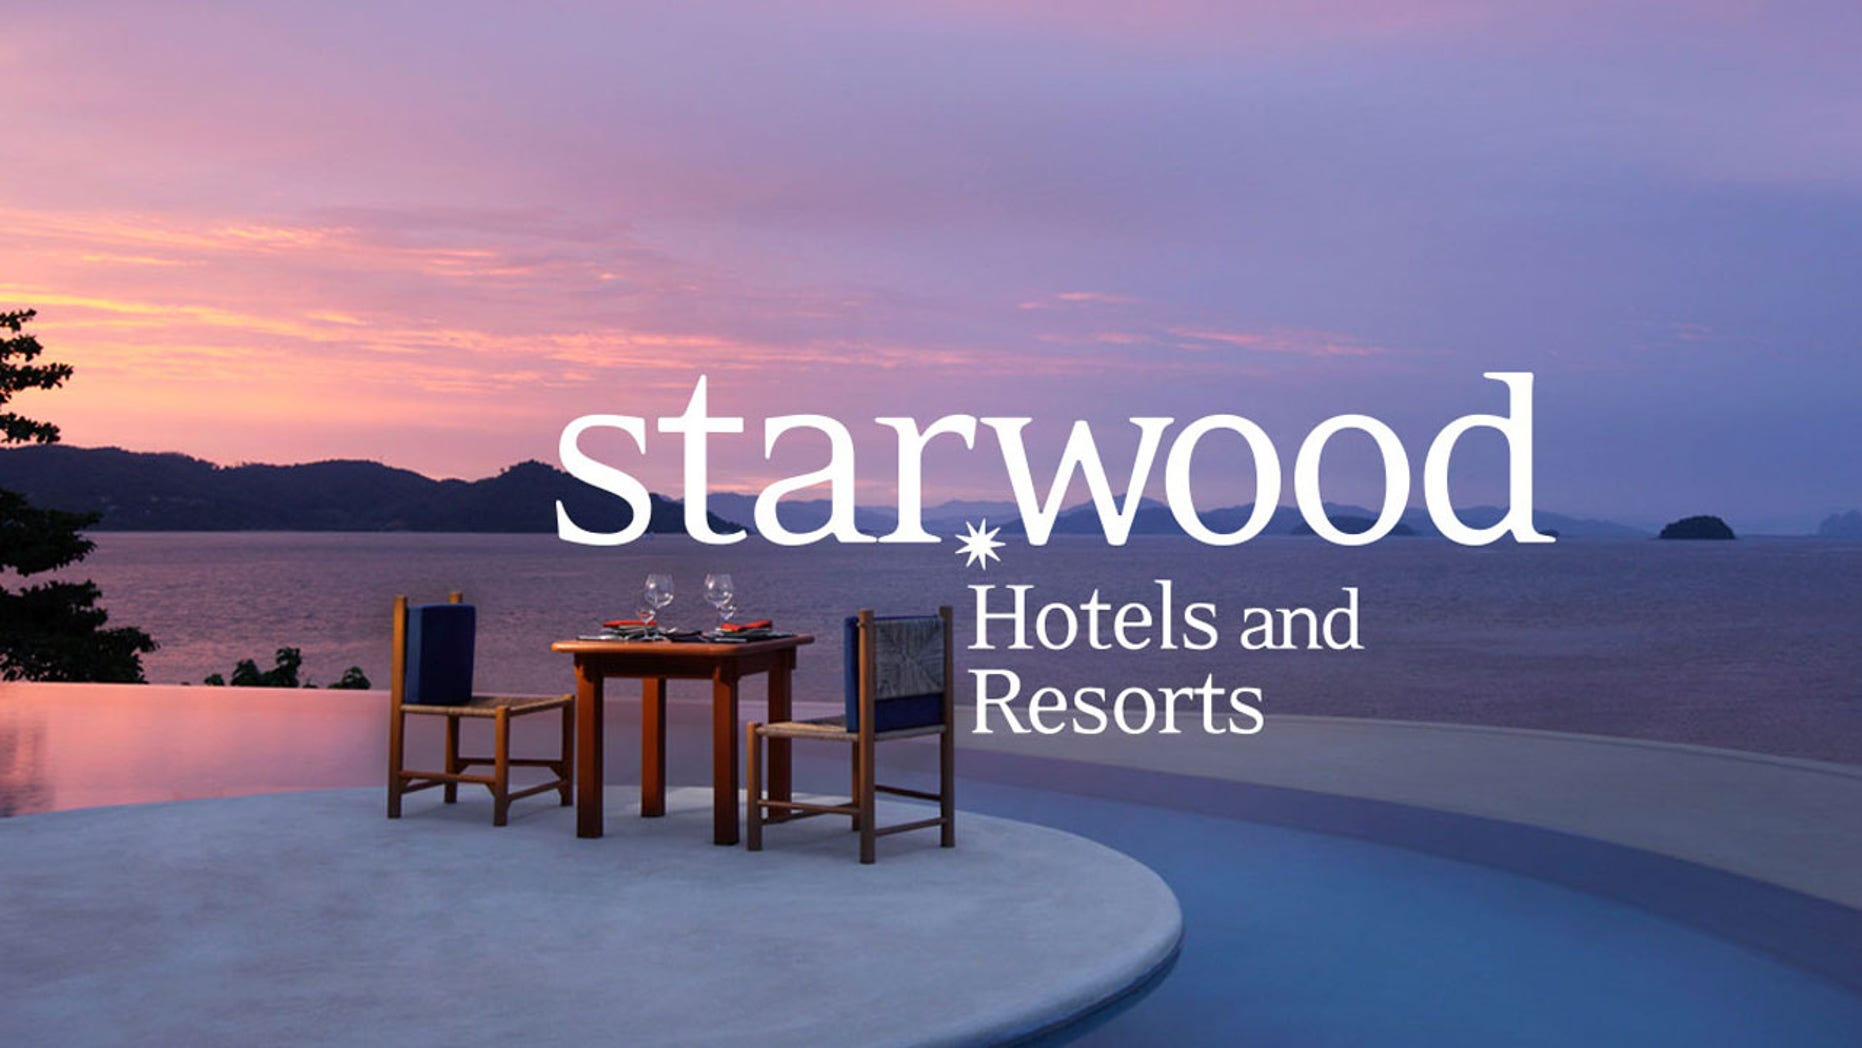 """Starwood Hotel and Resorts' deeming of the Angbang offer as a """"superior"""" proposal could be good for consumers."""